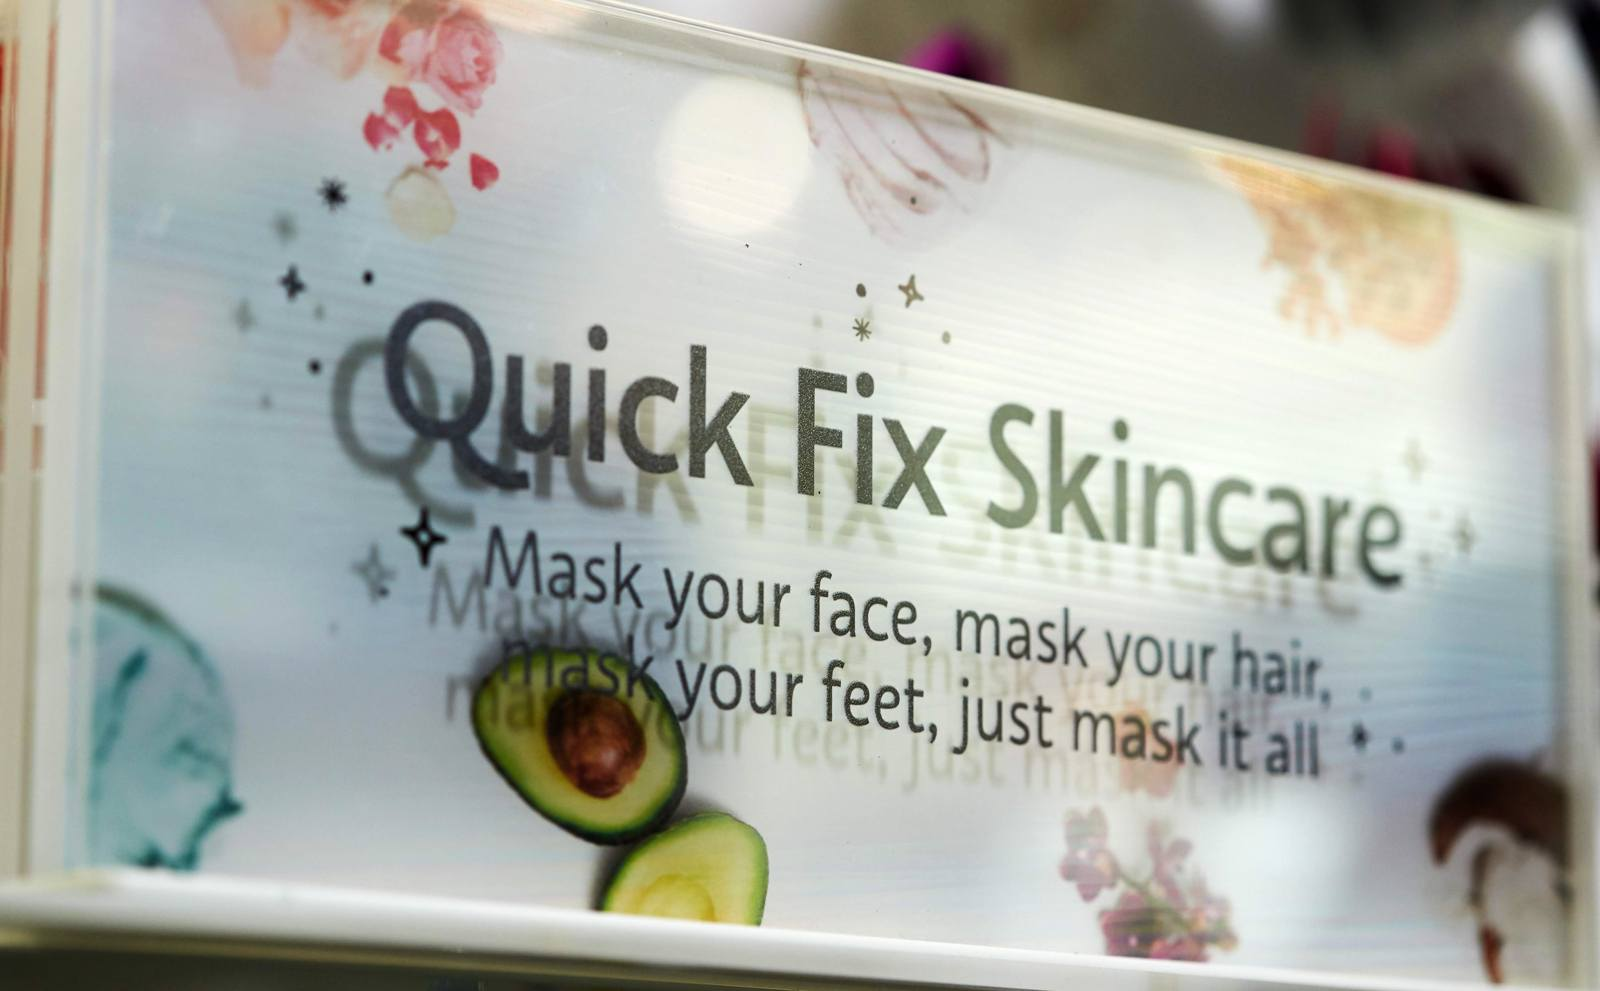 An up-close view of the acrylic signage designed for Sephora's endcap, showing the product ingredients to play up the floating illusion and color palette.